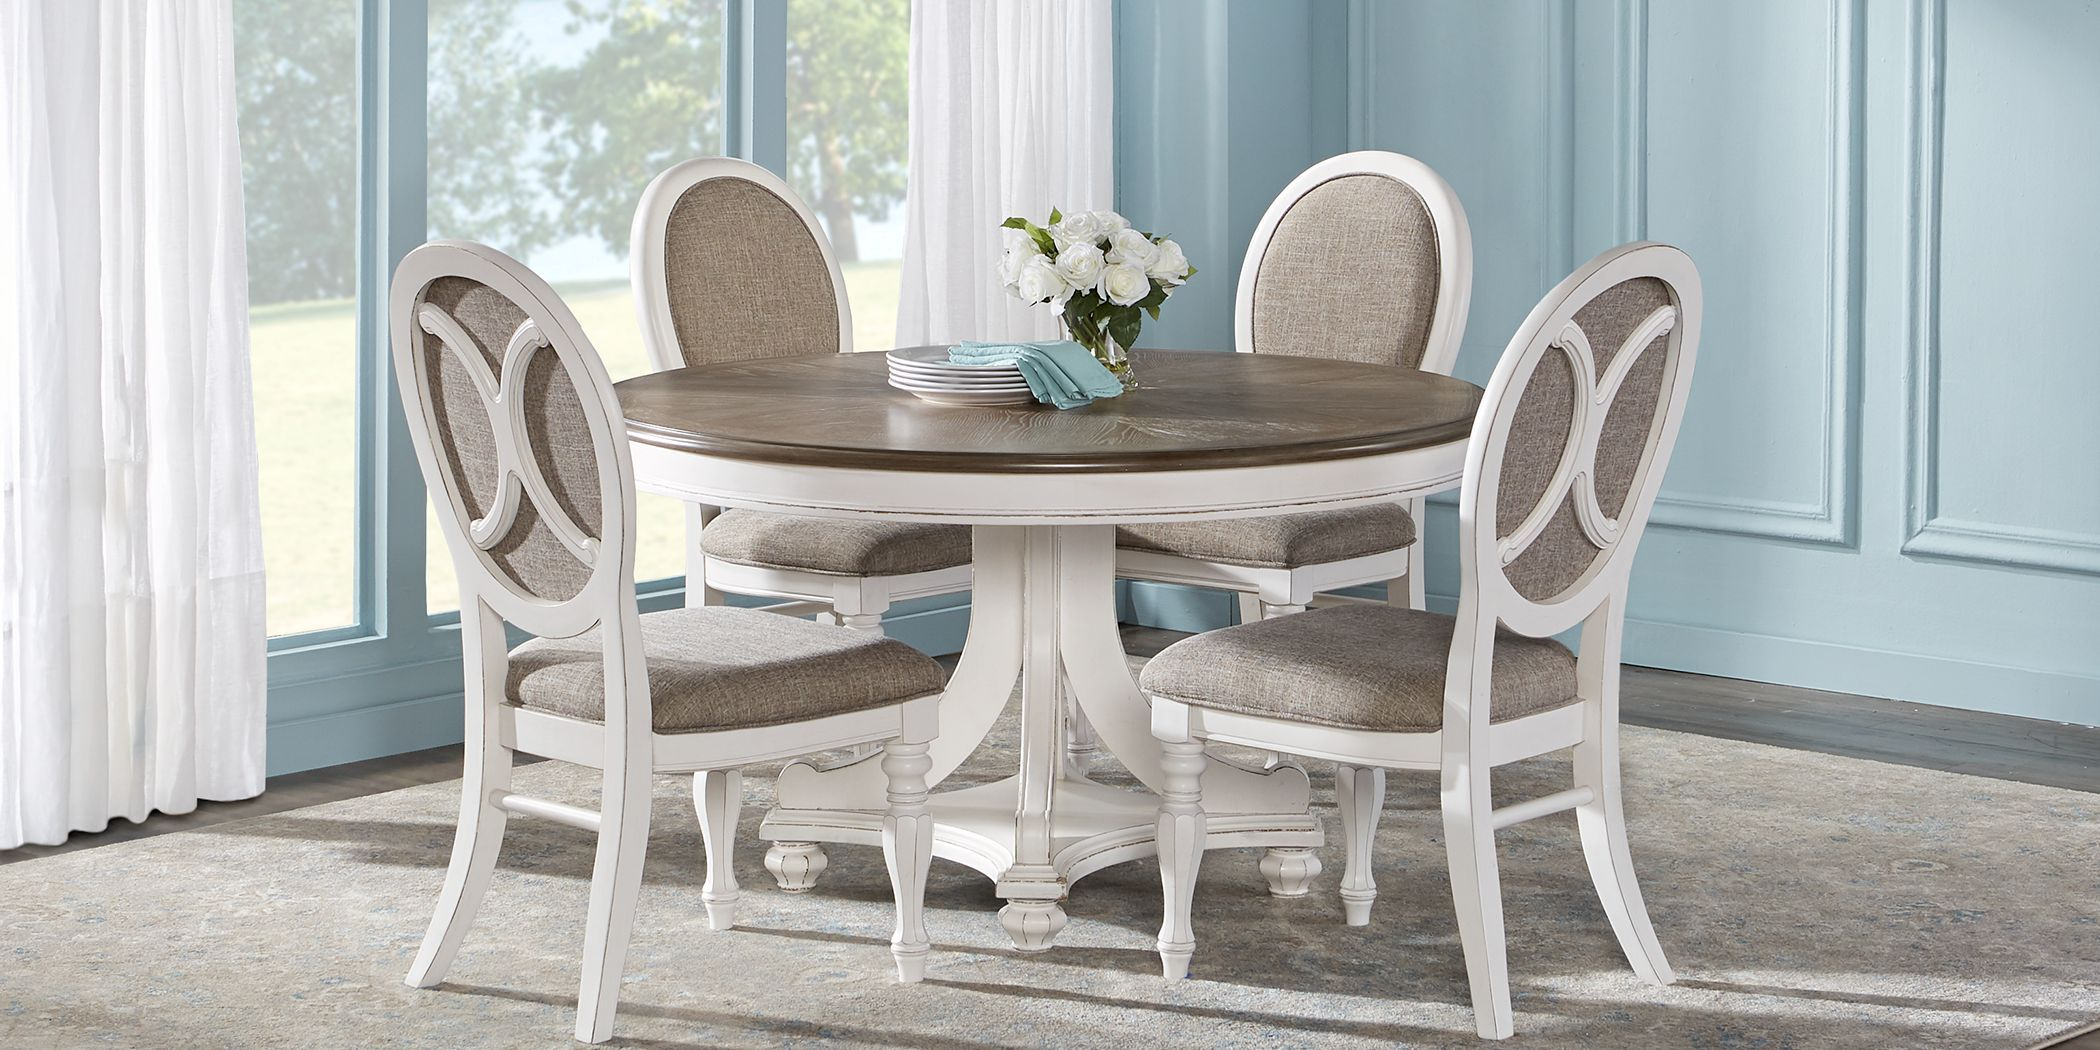 39+ Rooms to go round dining set Various Types